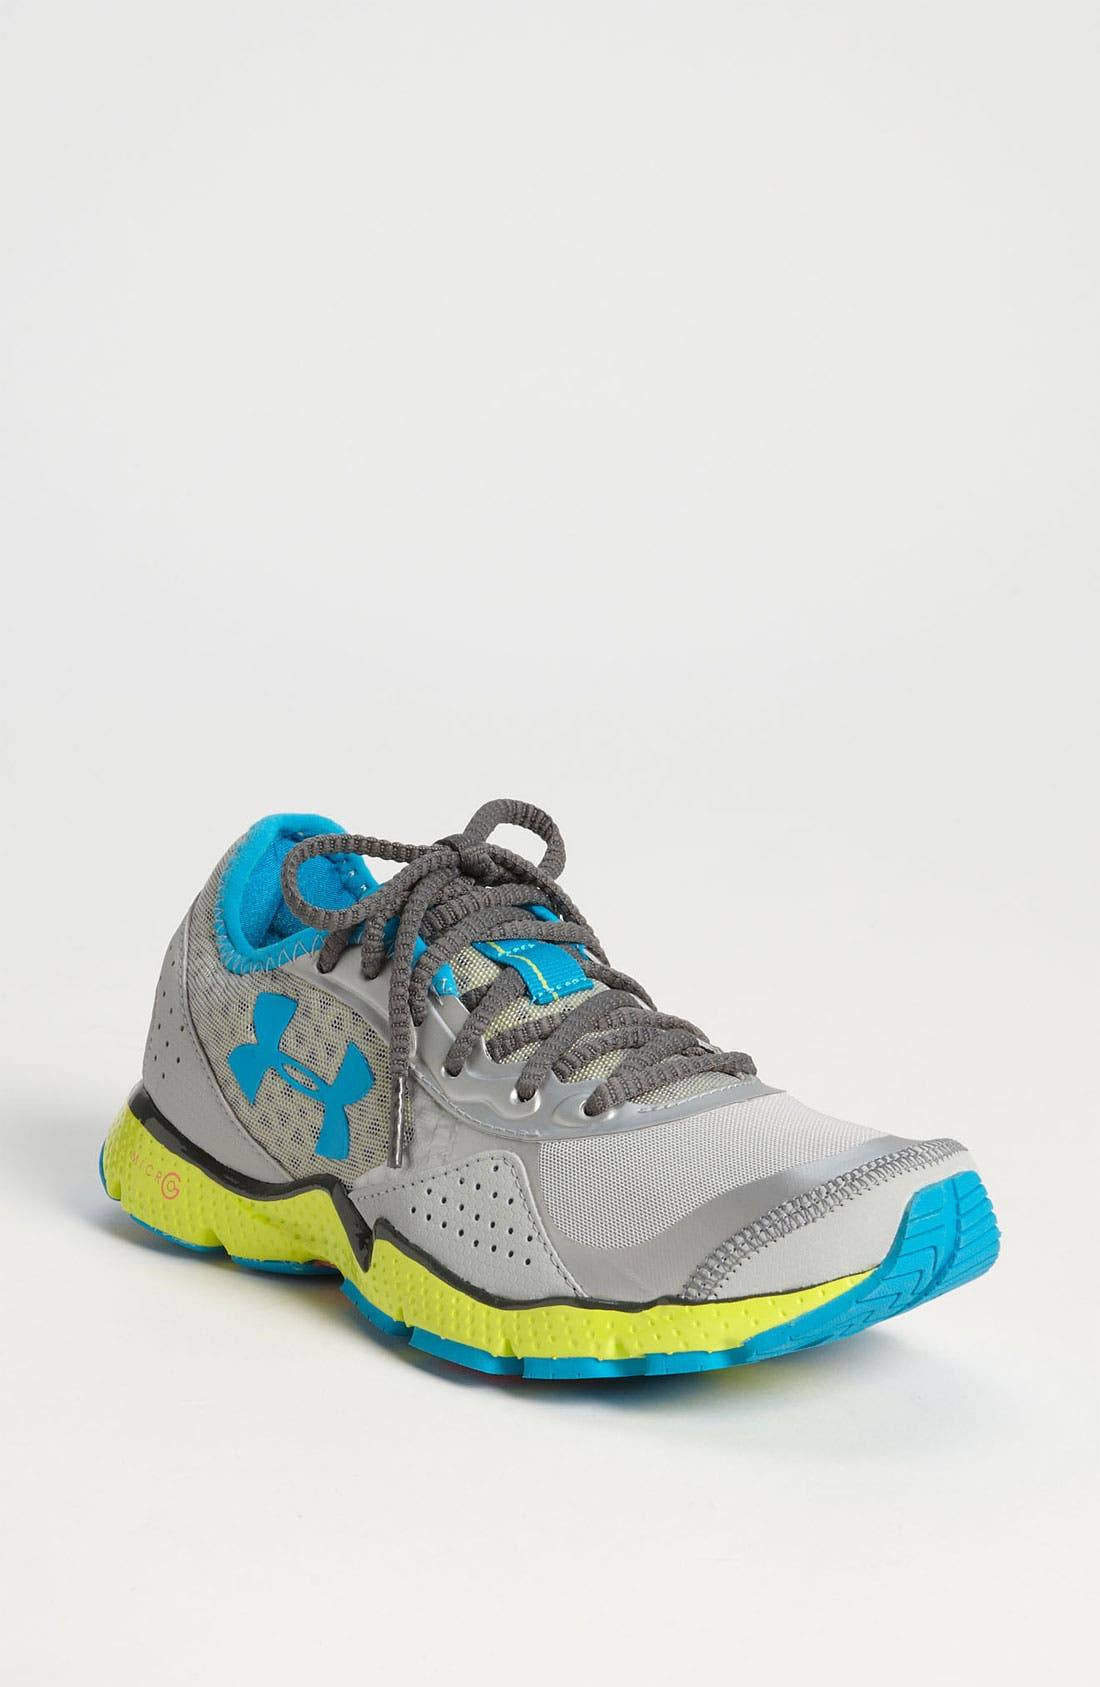 Alternate Image 1 Selected - Under Armour 'Feather Shield' Running Shoe (Women)